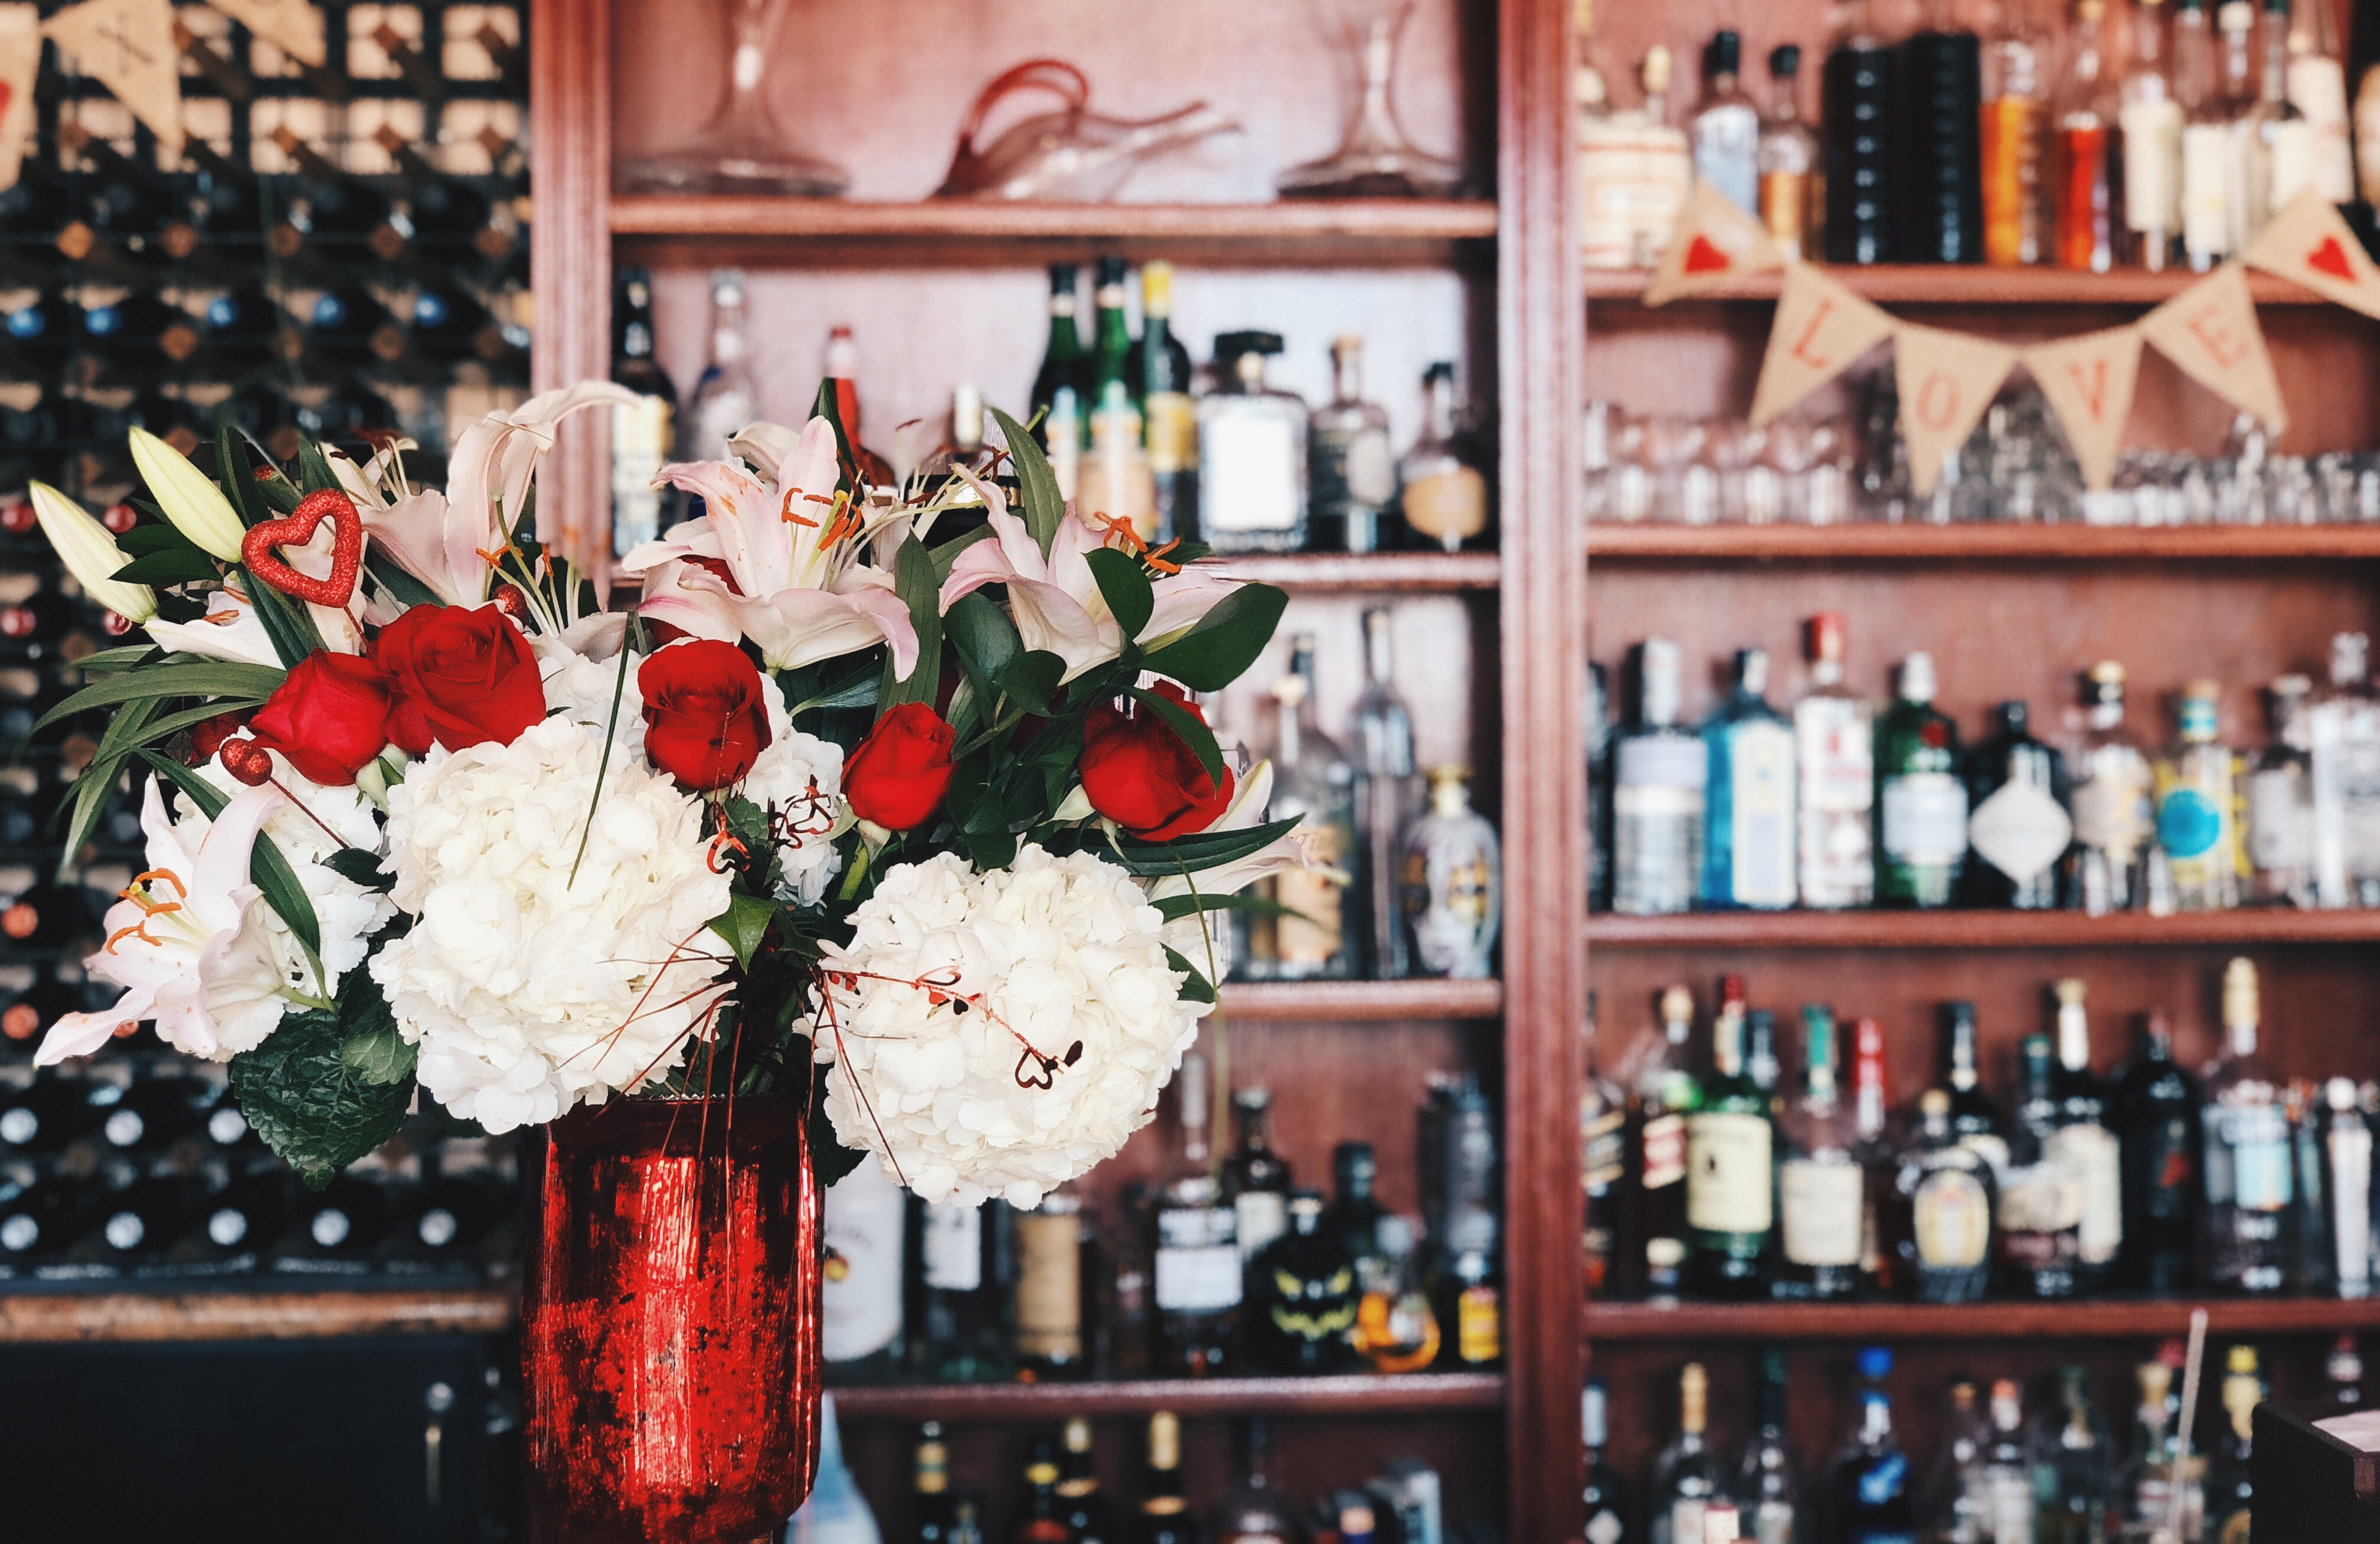 Red and white flower bouquet in a red vase in the foreground. The background is a blurred image of a full bar: Many bottles of vodka, gin, and  bourbon.